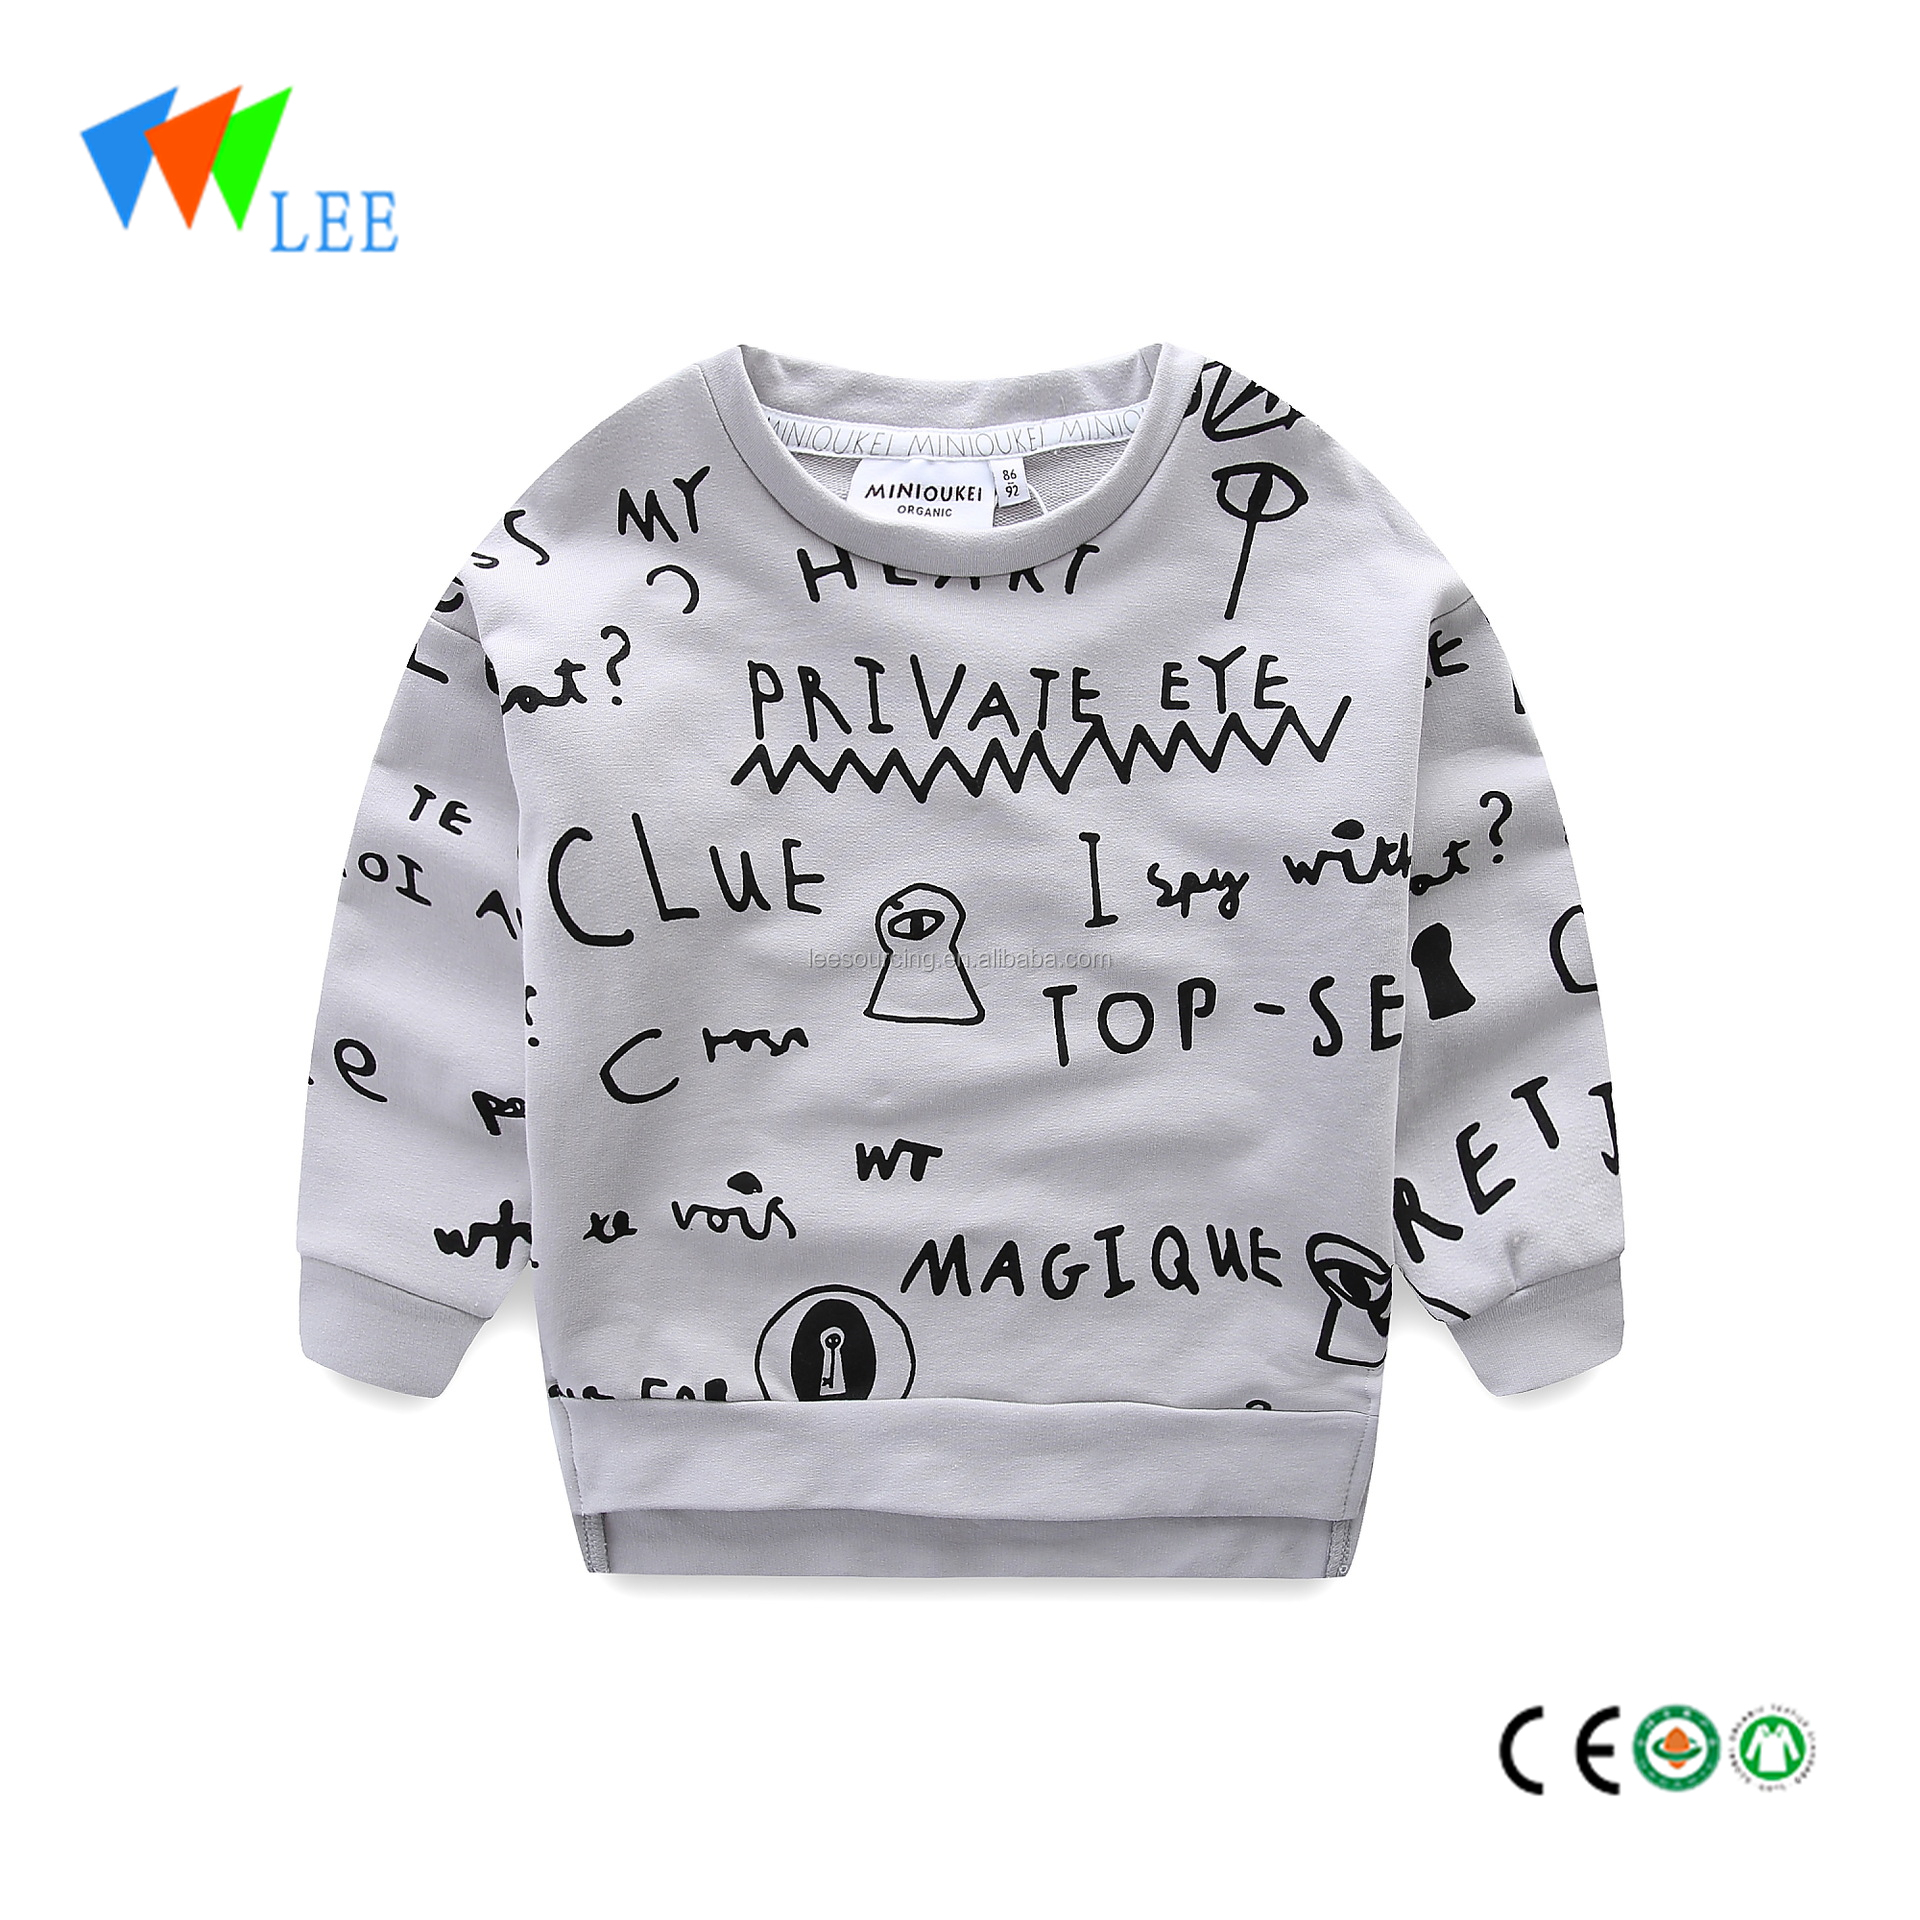 New design baby boy hoodies sweatshirt children printing custom crewneck sweatshirt kids winter clothes